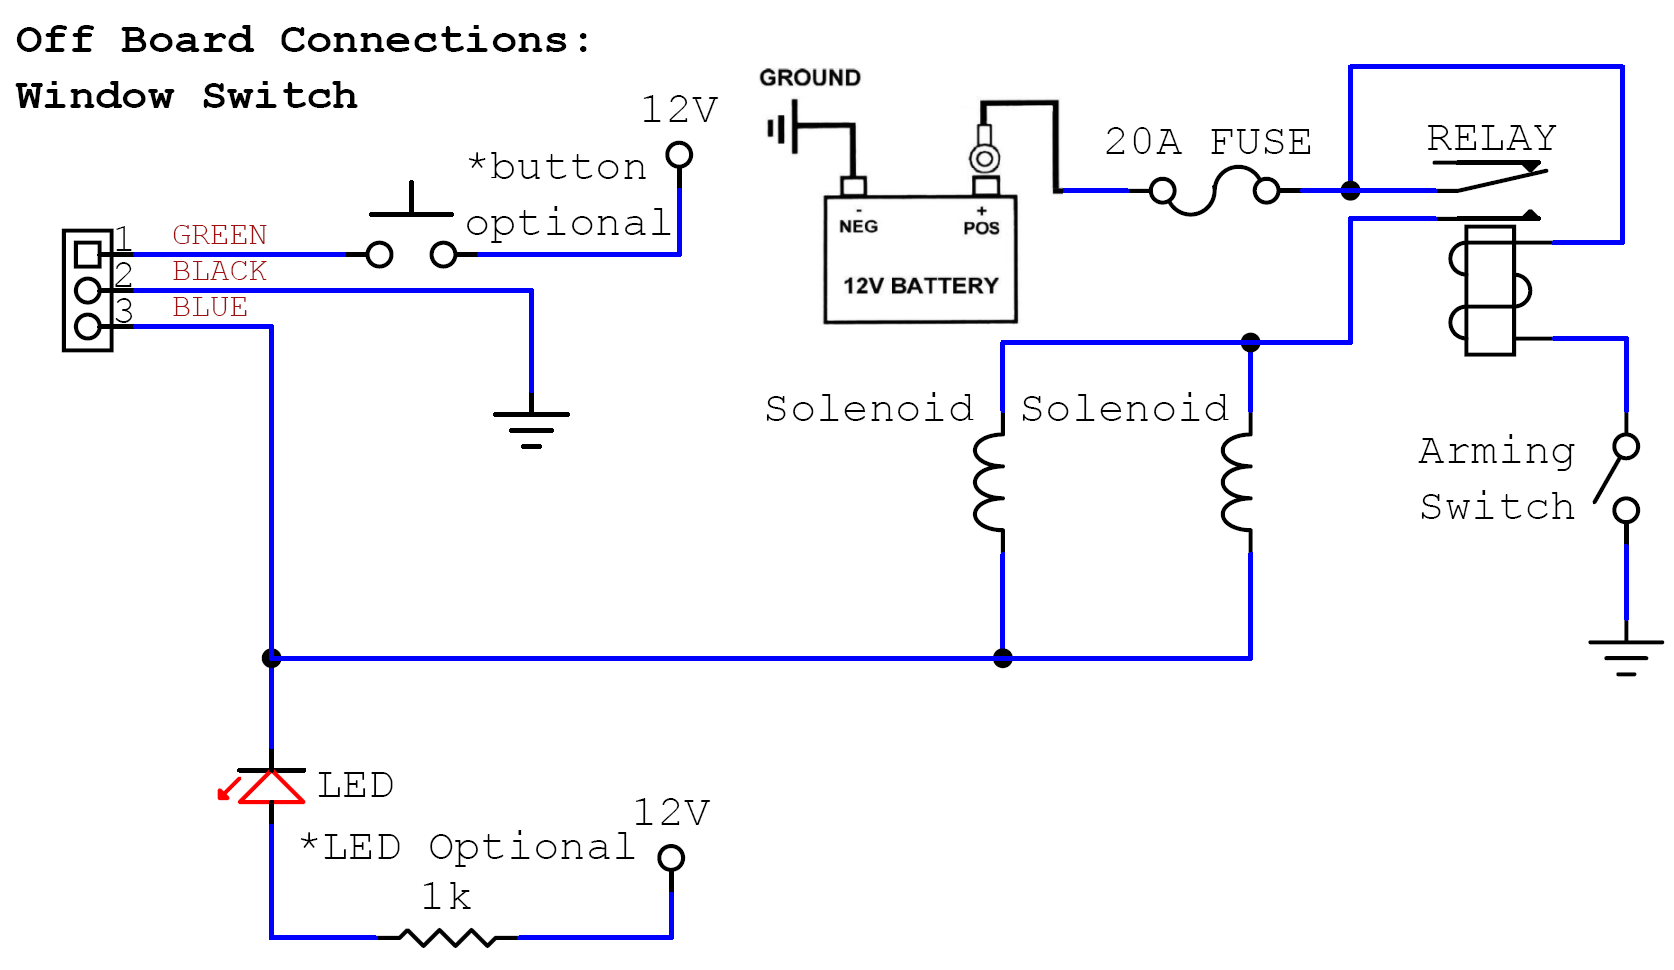 Wiring Diagram For Nissan 350z Wot Library Box Two Step Rev Limiter And No Lift Shifting Closed